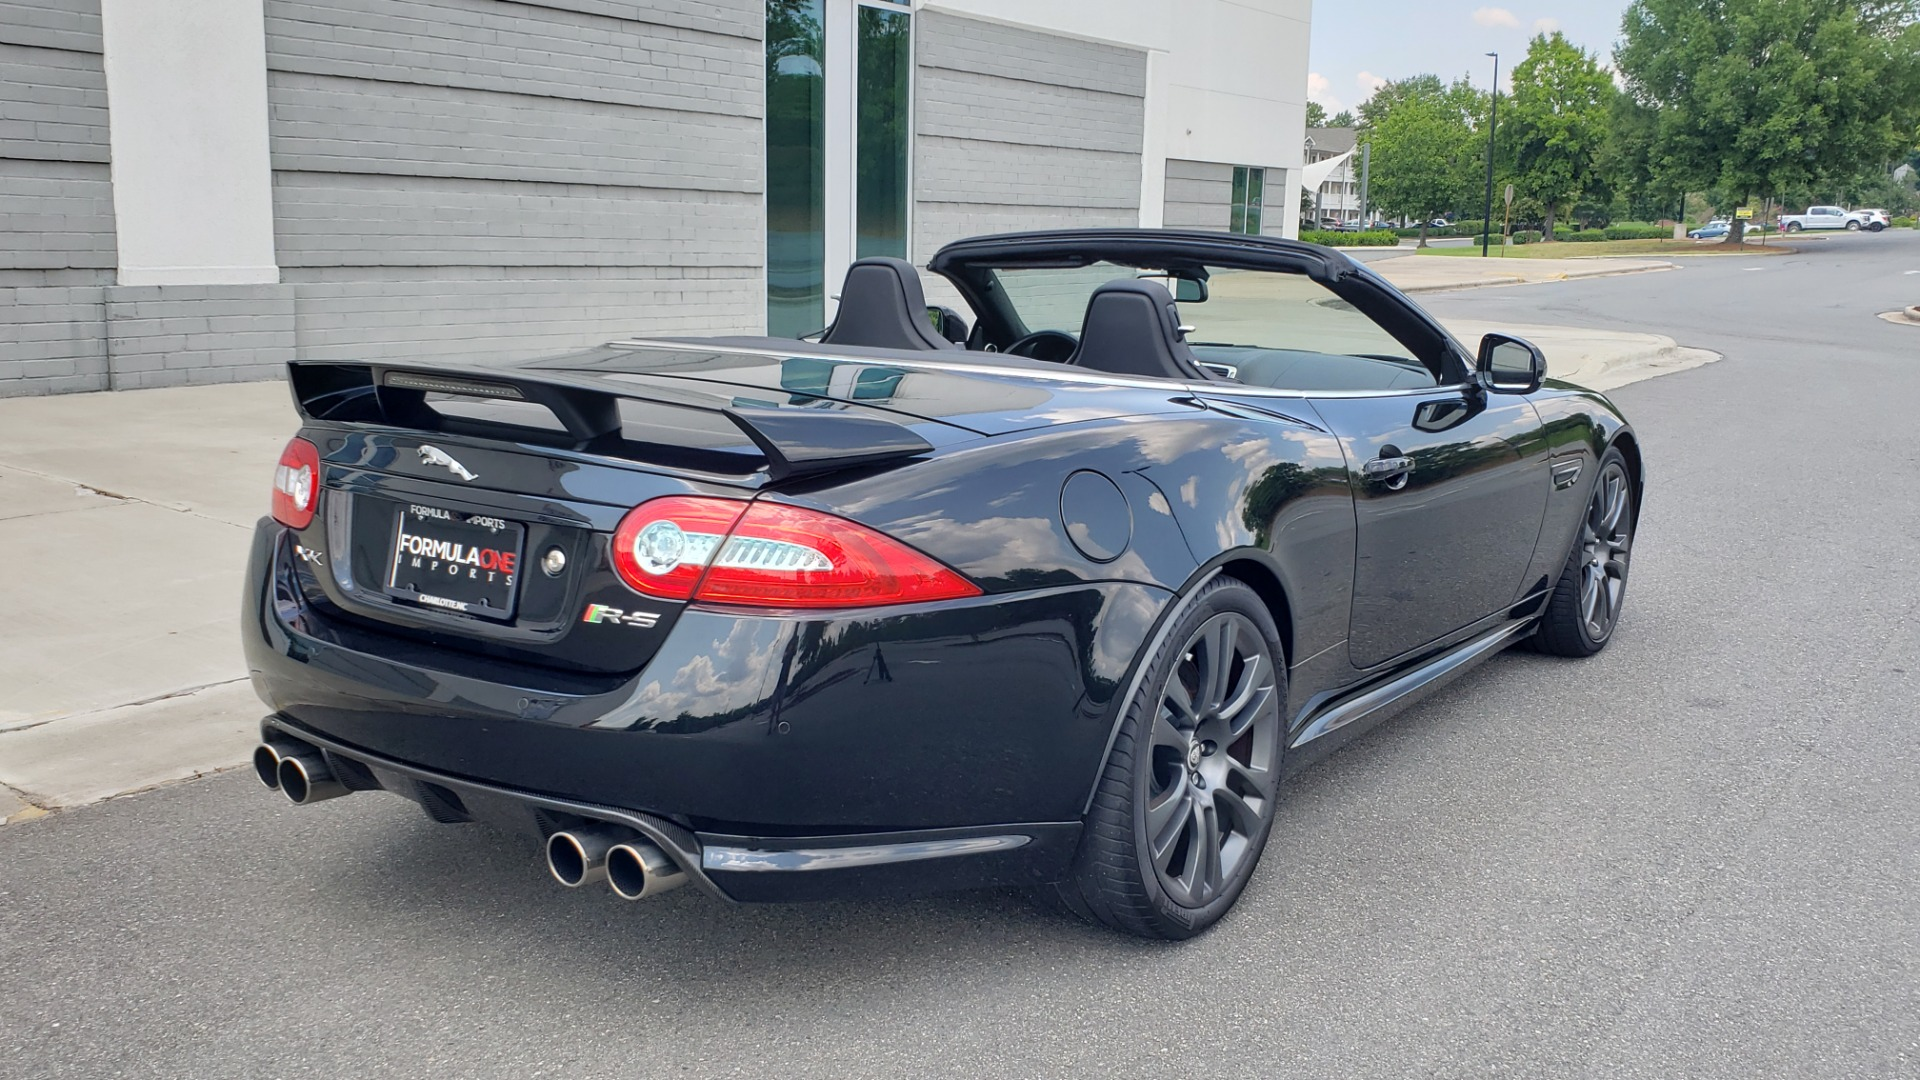 Used 2013 Jaguar XK R-S CONVERTIBLE / SC 5.0L V8 (550HP) / ZF 6-SPD AUTO / NAV / REARVIEW for sale $74,995 at Formula Imports in Charlotte NC 28227 11